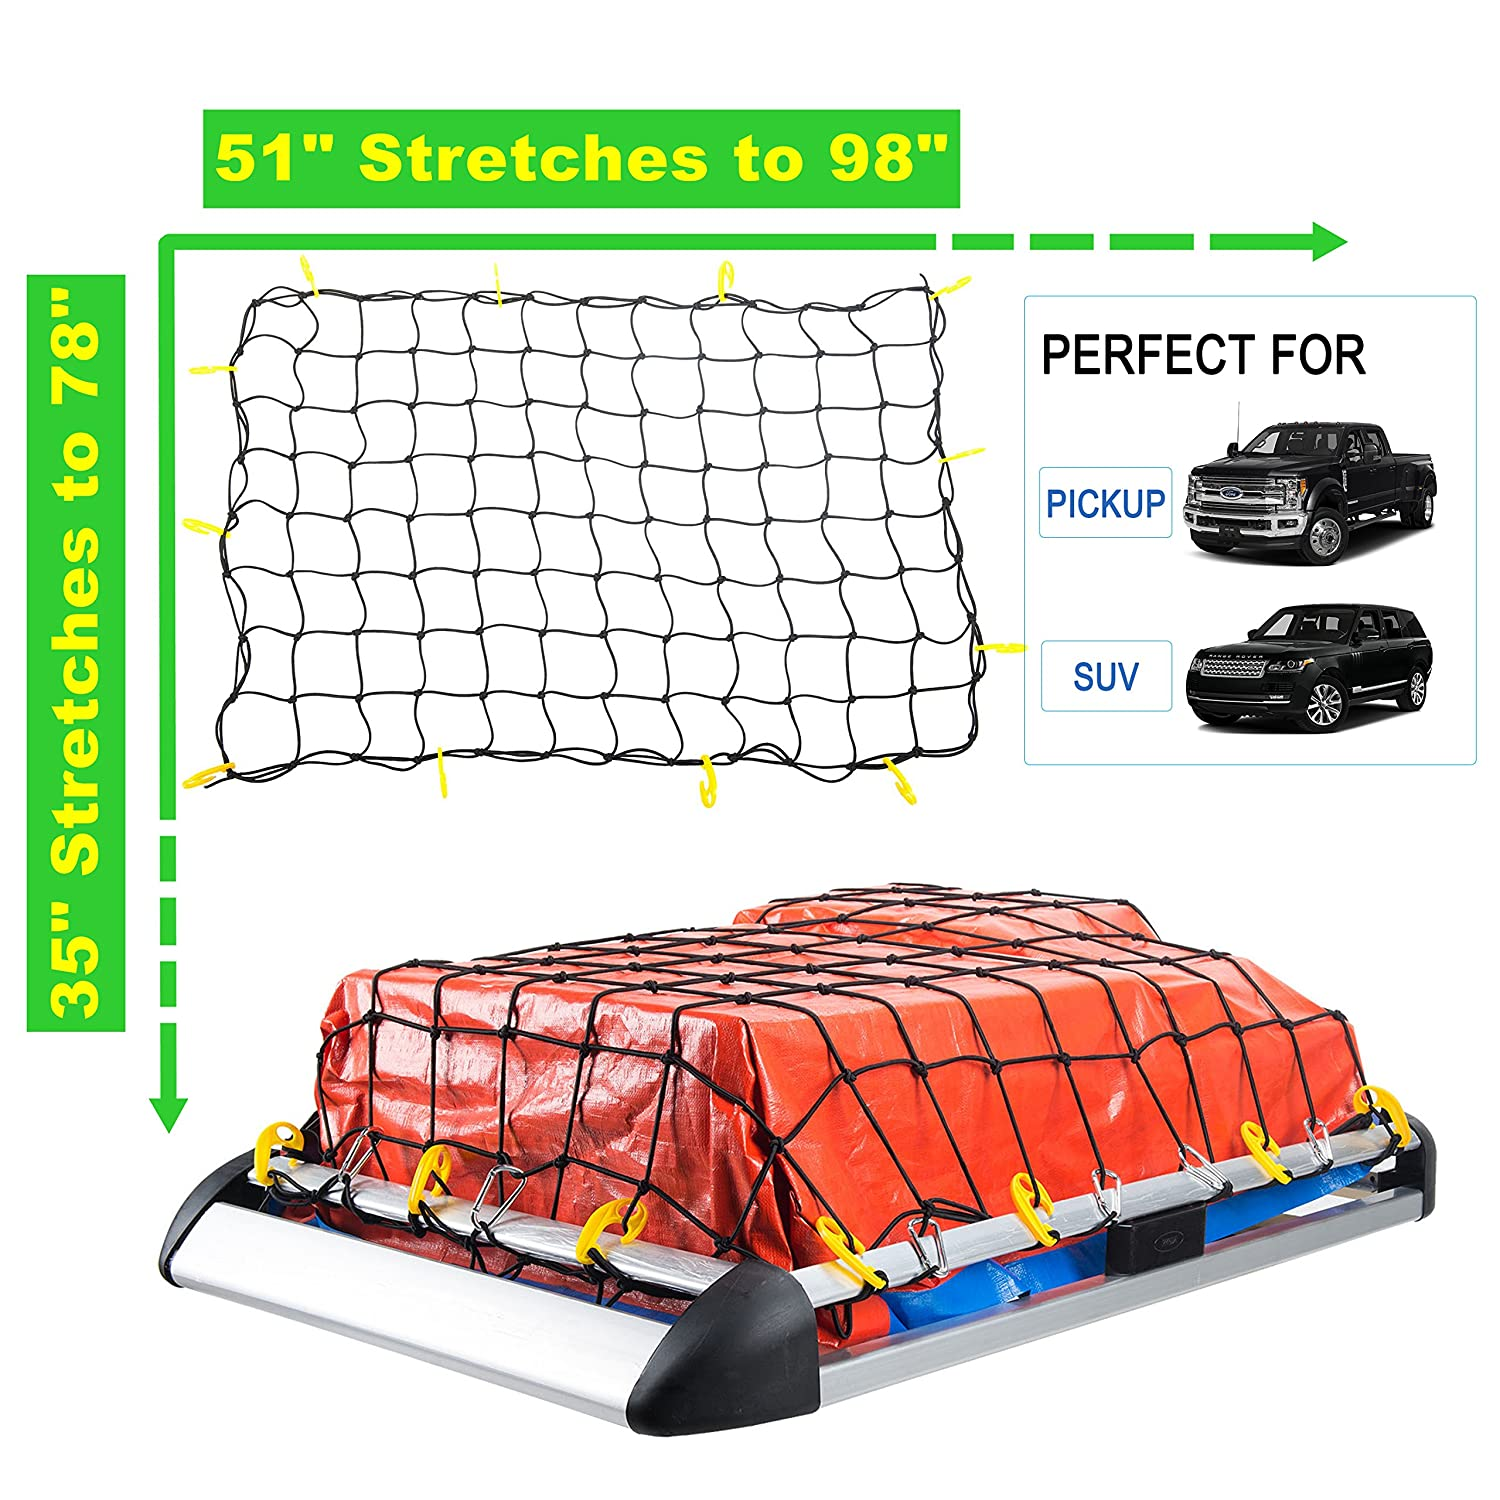 for Pickup Truck Bed and SUV Rooftop Travel Luggage Rack 12 Nylon Hooks OrionMotorTech 3x4 to 6x8 Heavy Duty Latex Cargo Net with 12 Tangle-Free D Clip Carabiners Small 4x4 Mesh 5mm Cord